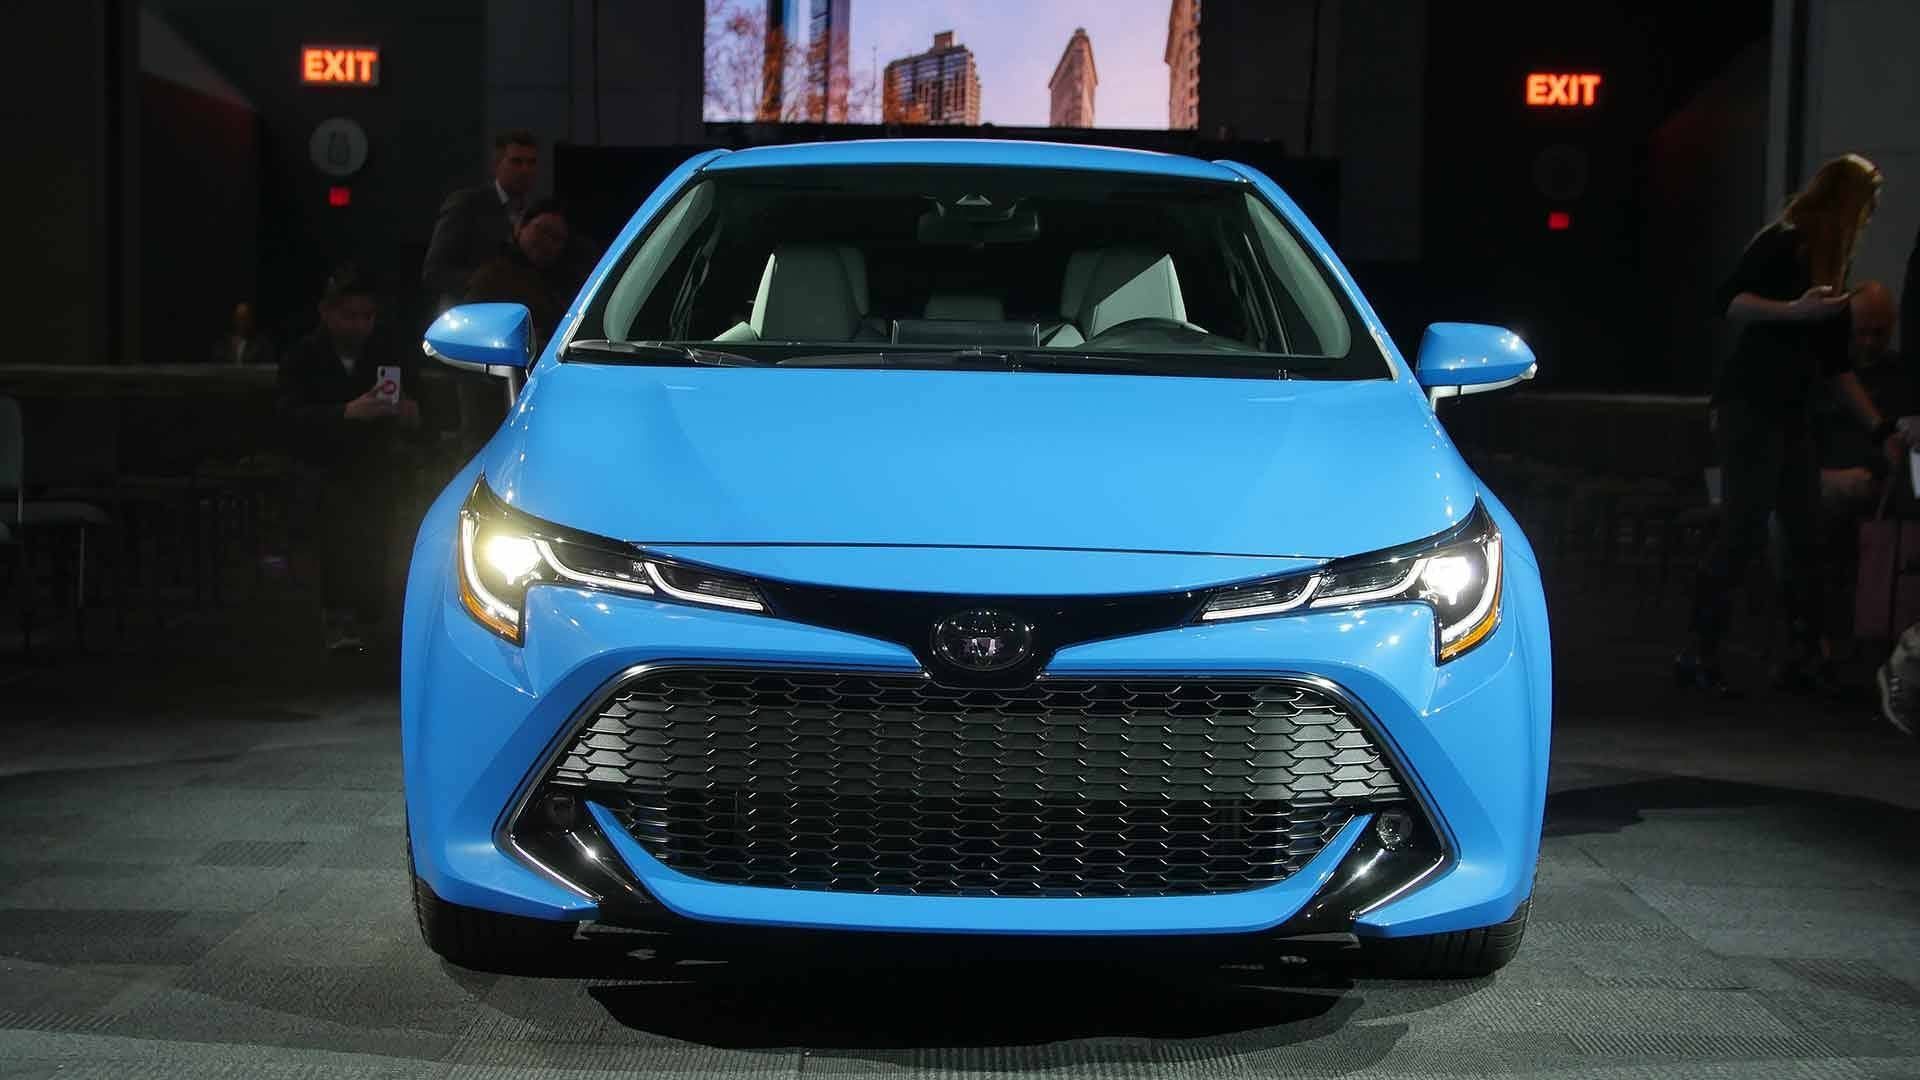 2019 Toyota Corolla Hatchback Is Capable Of Seeing